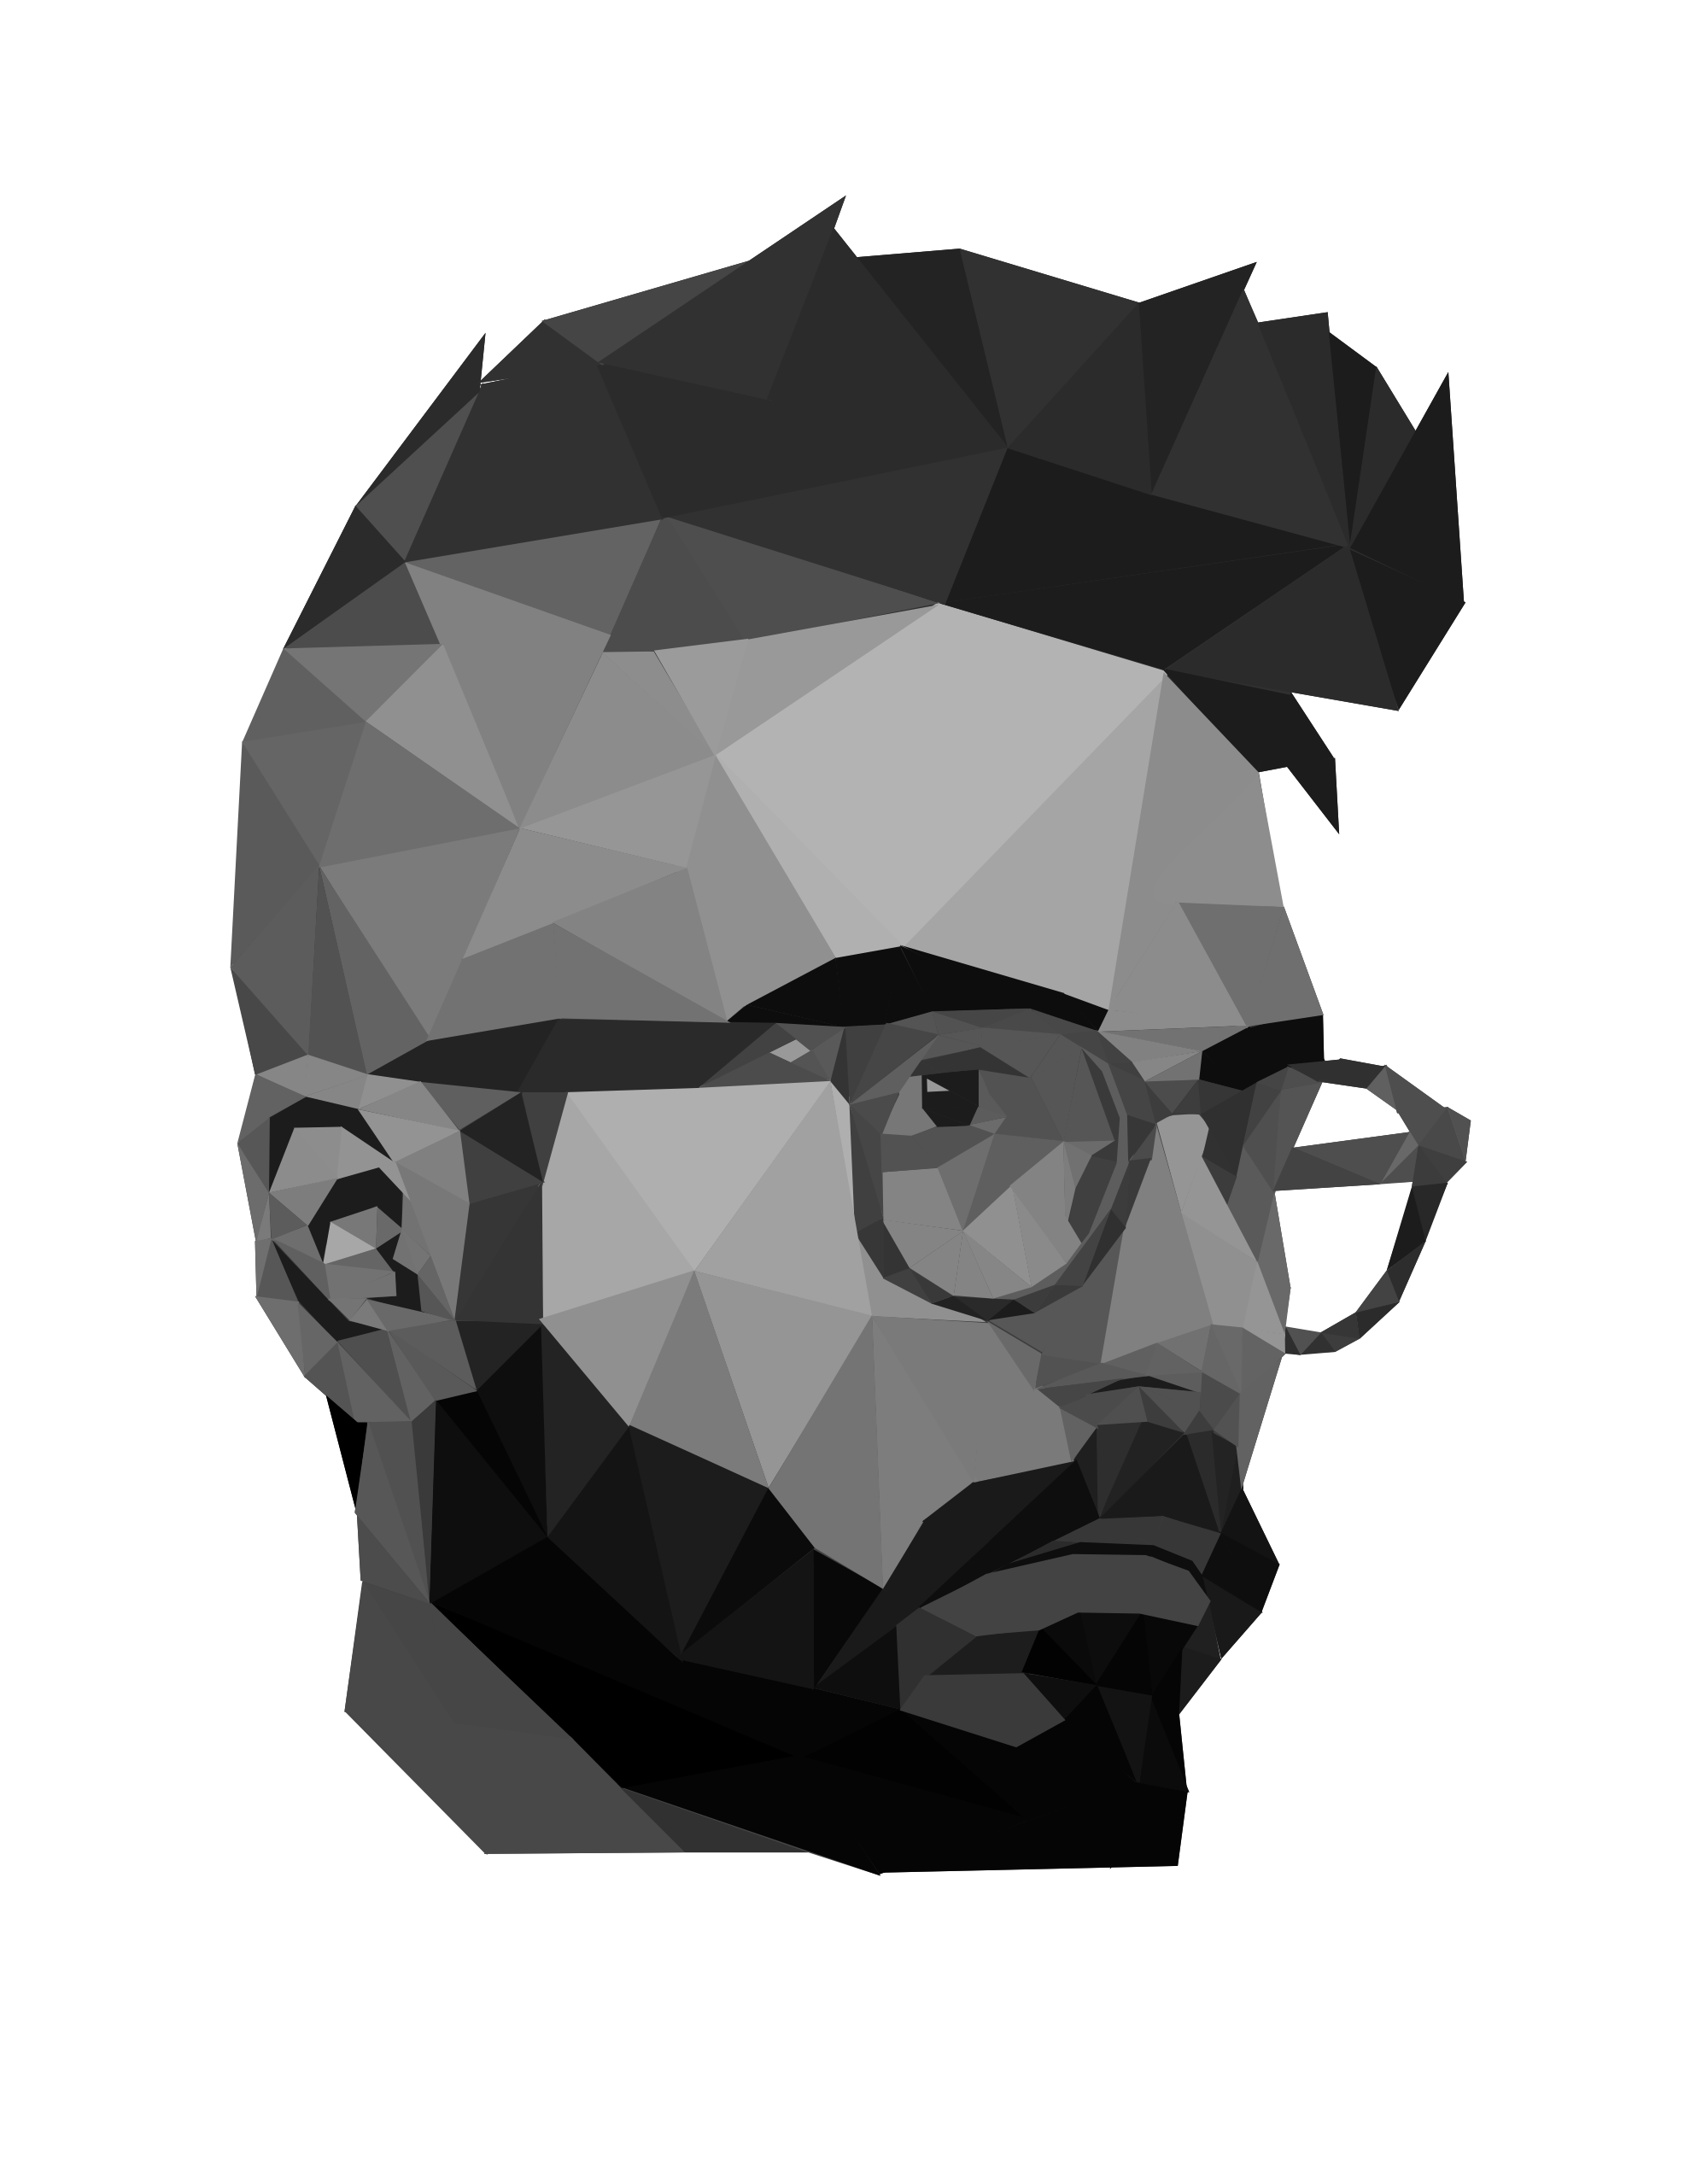 create a polygon business logo or transform your portrait or current logo into a super-cool polygon design or graphic.